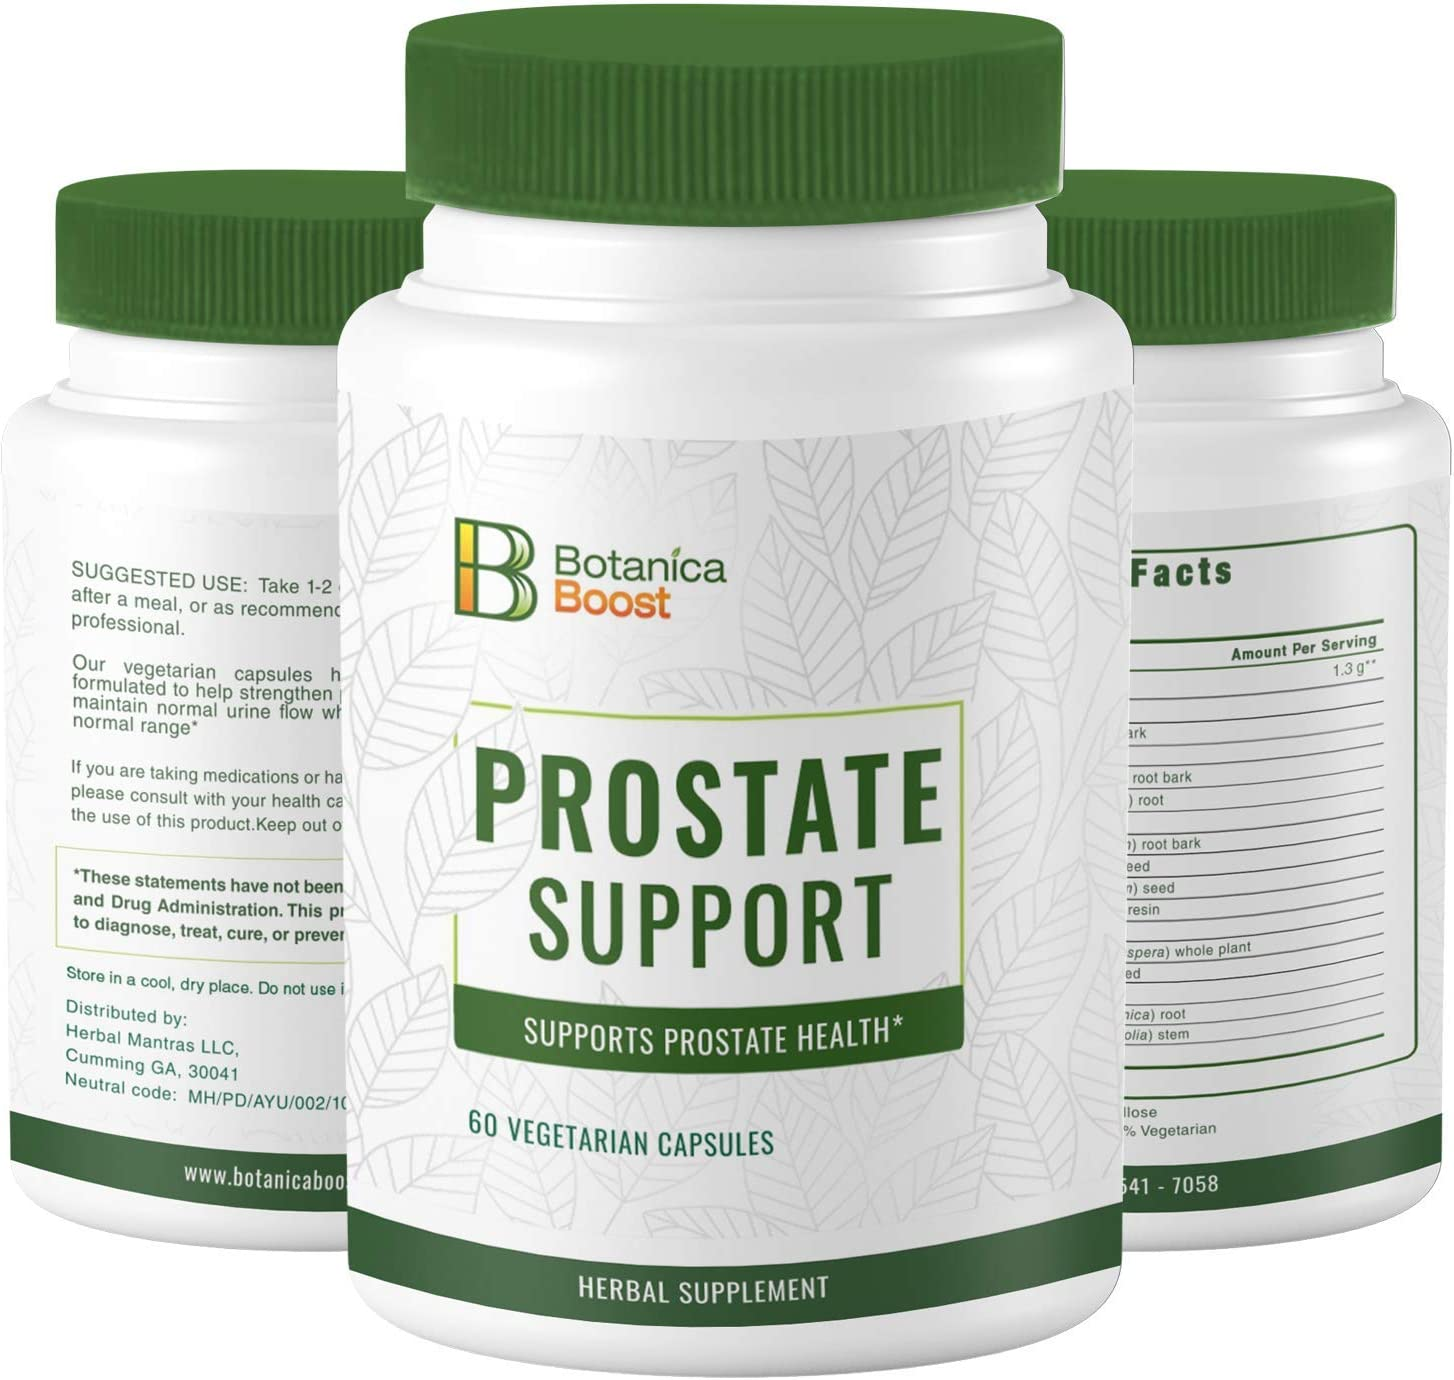 Botanica Boost Prostate Supplement for Men – 1300mg Herbal Prostate Health Formula with Root Bark and Seed Extracts Supports Urine Flow Already in The Normal Range (60)